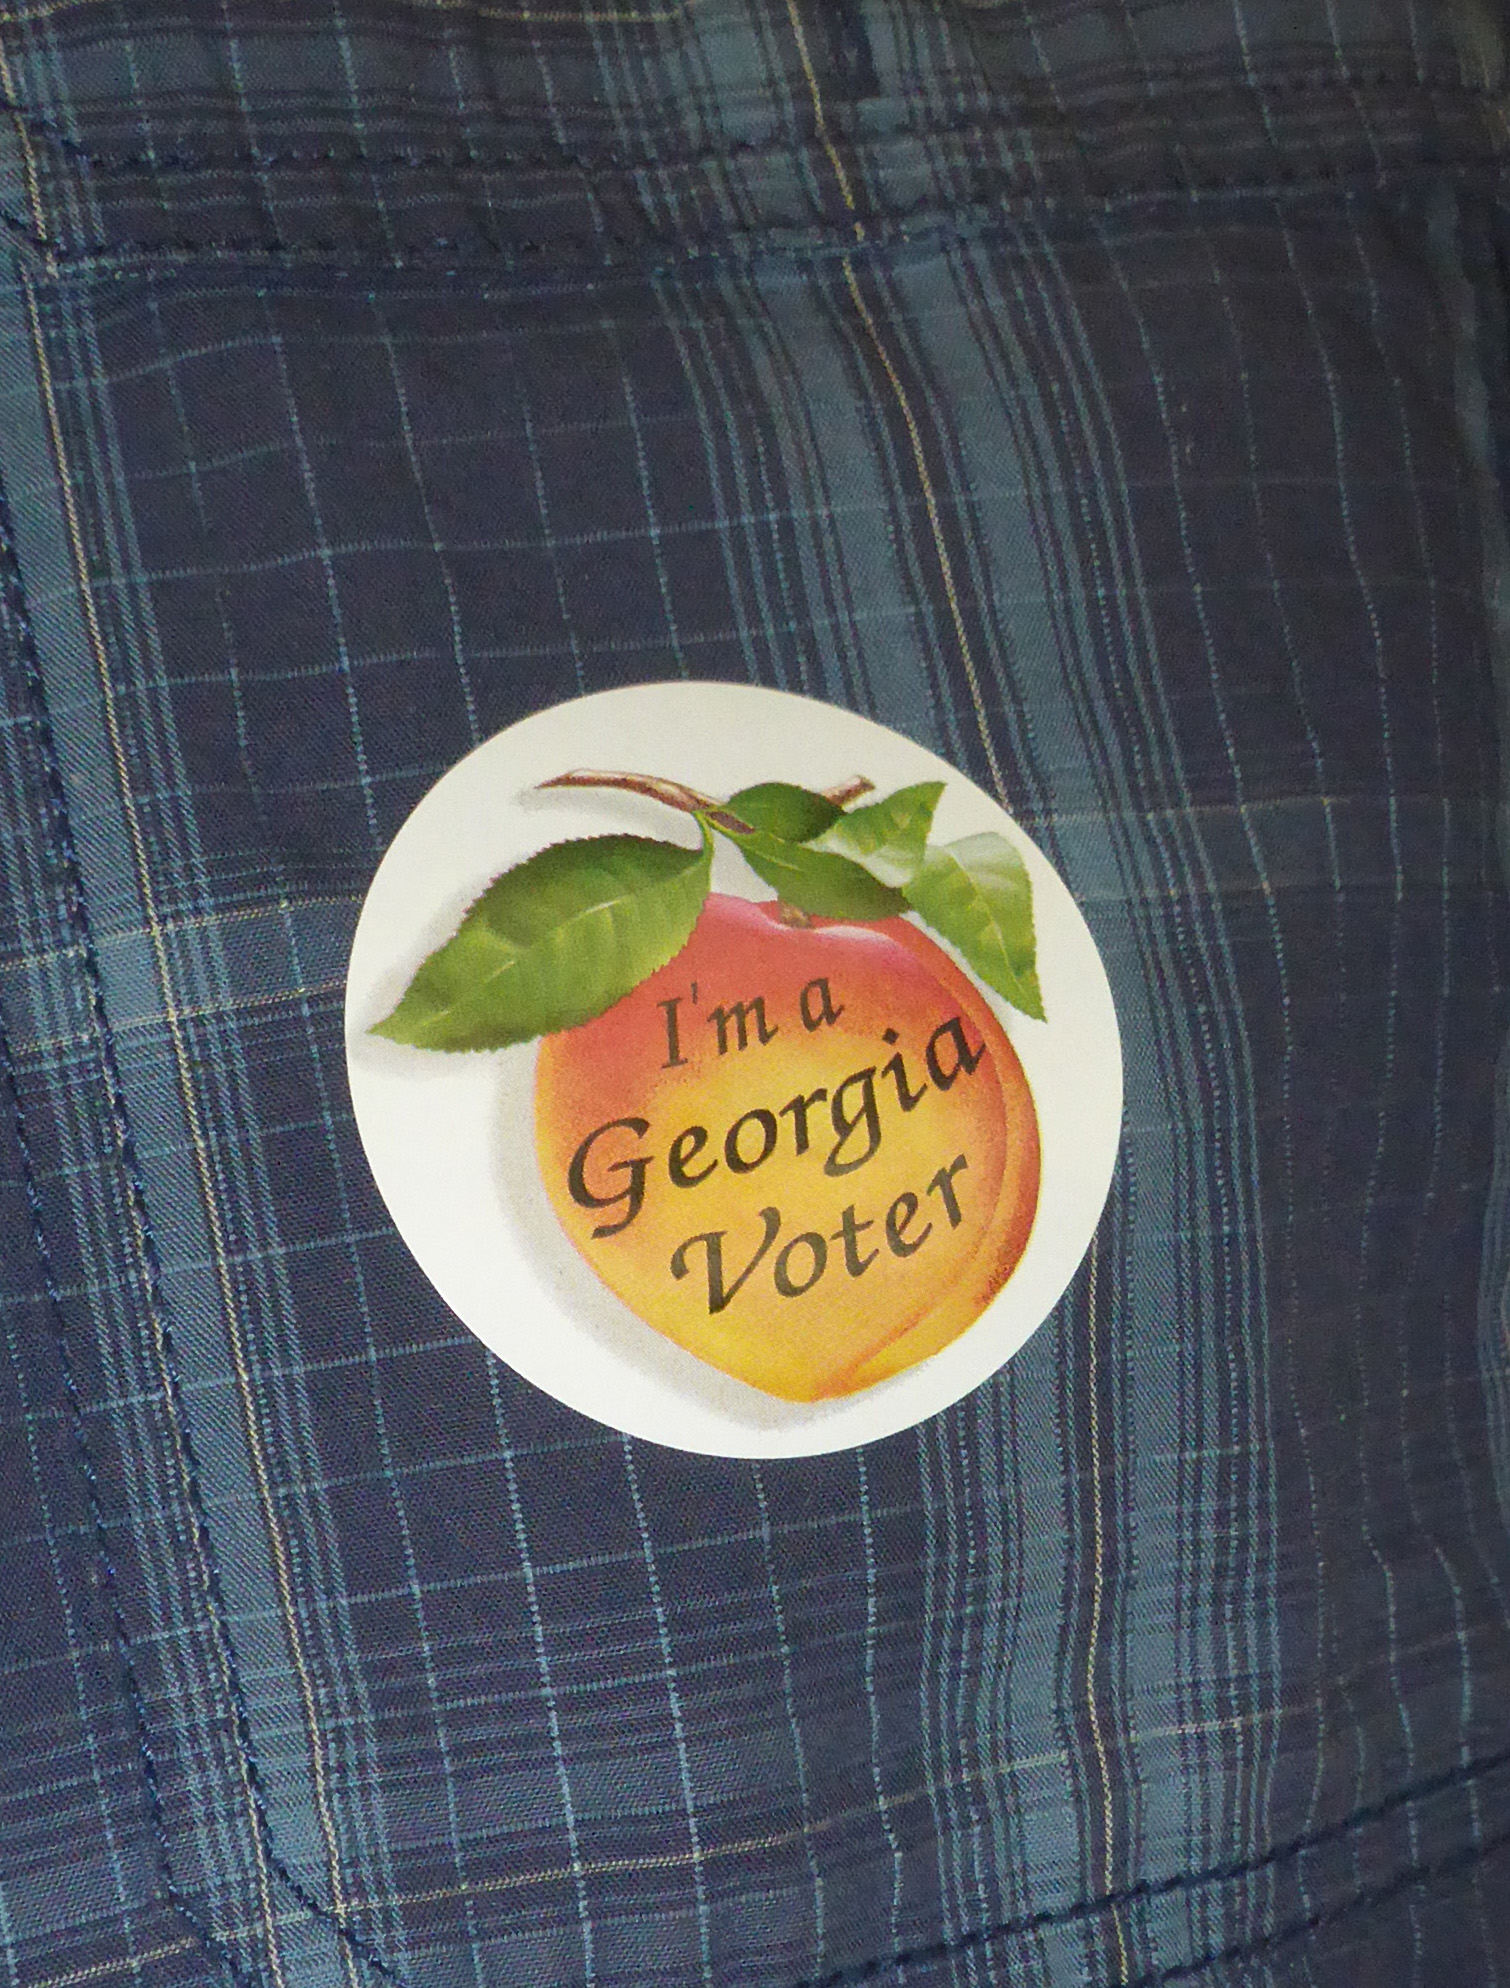 Georgia voter sticker